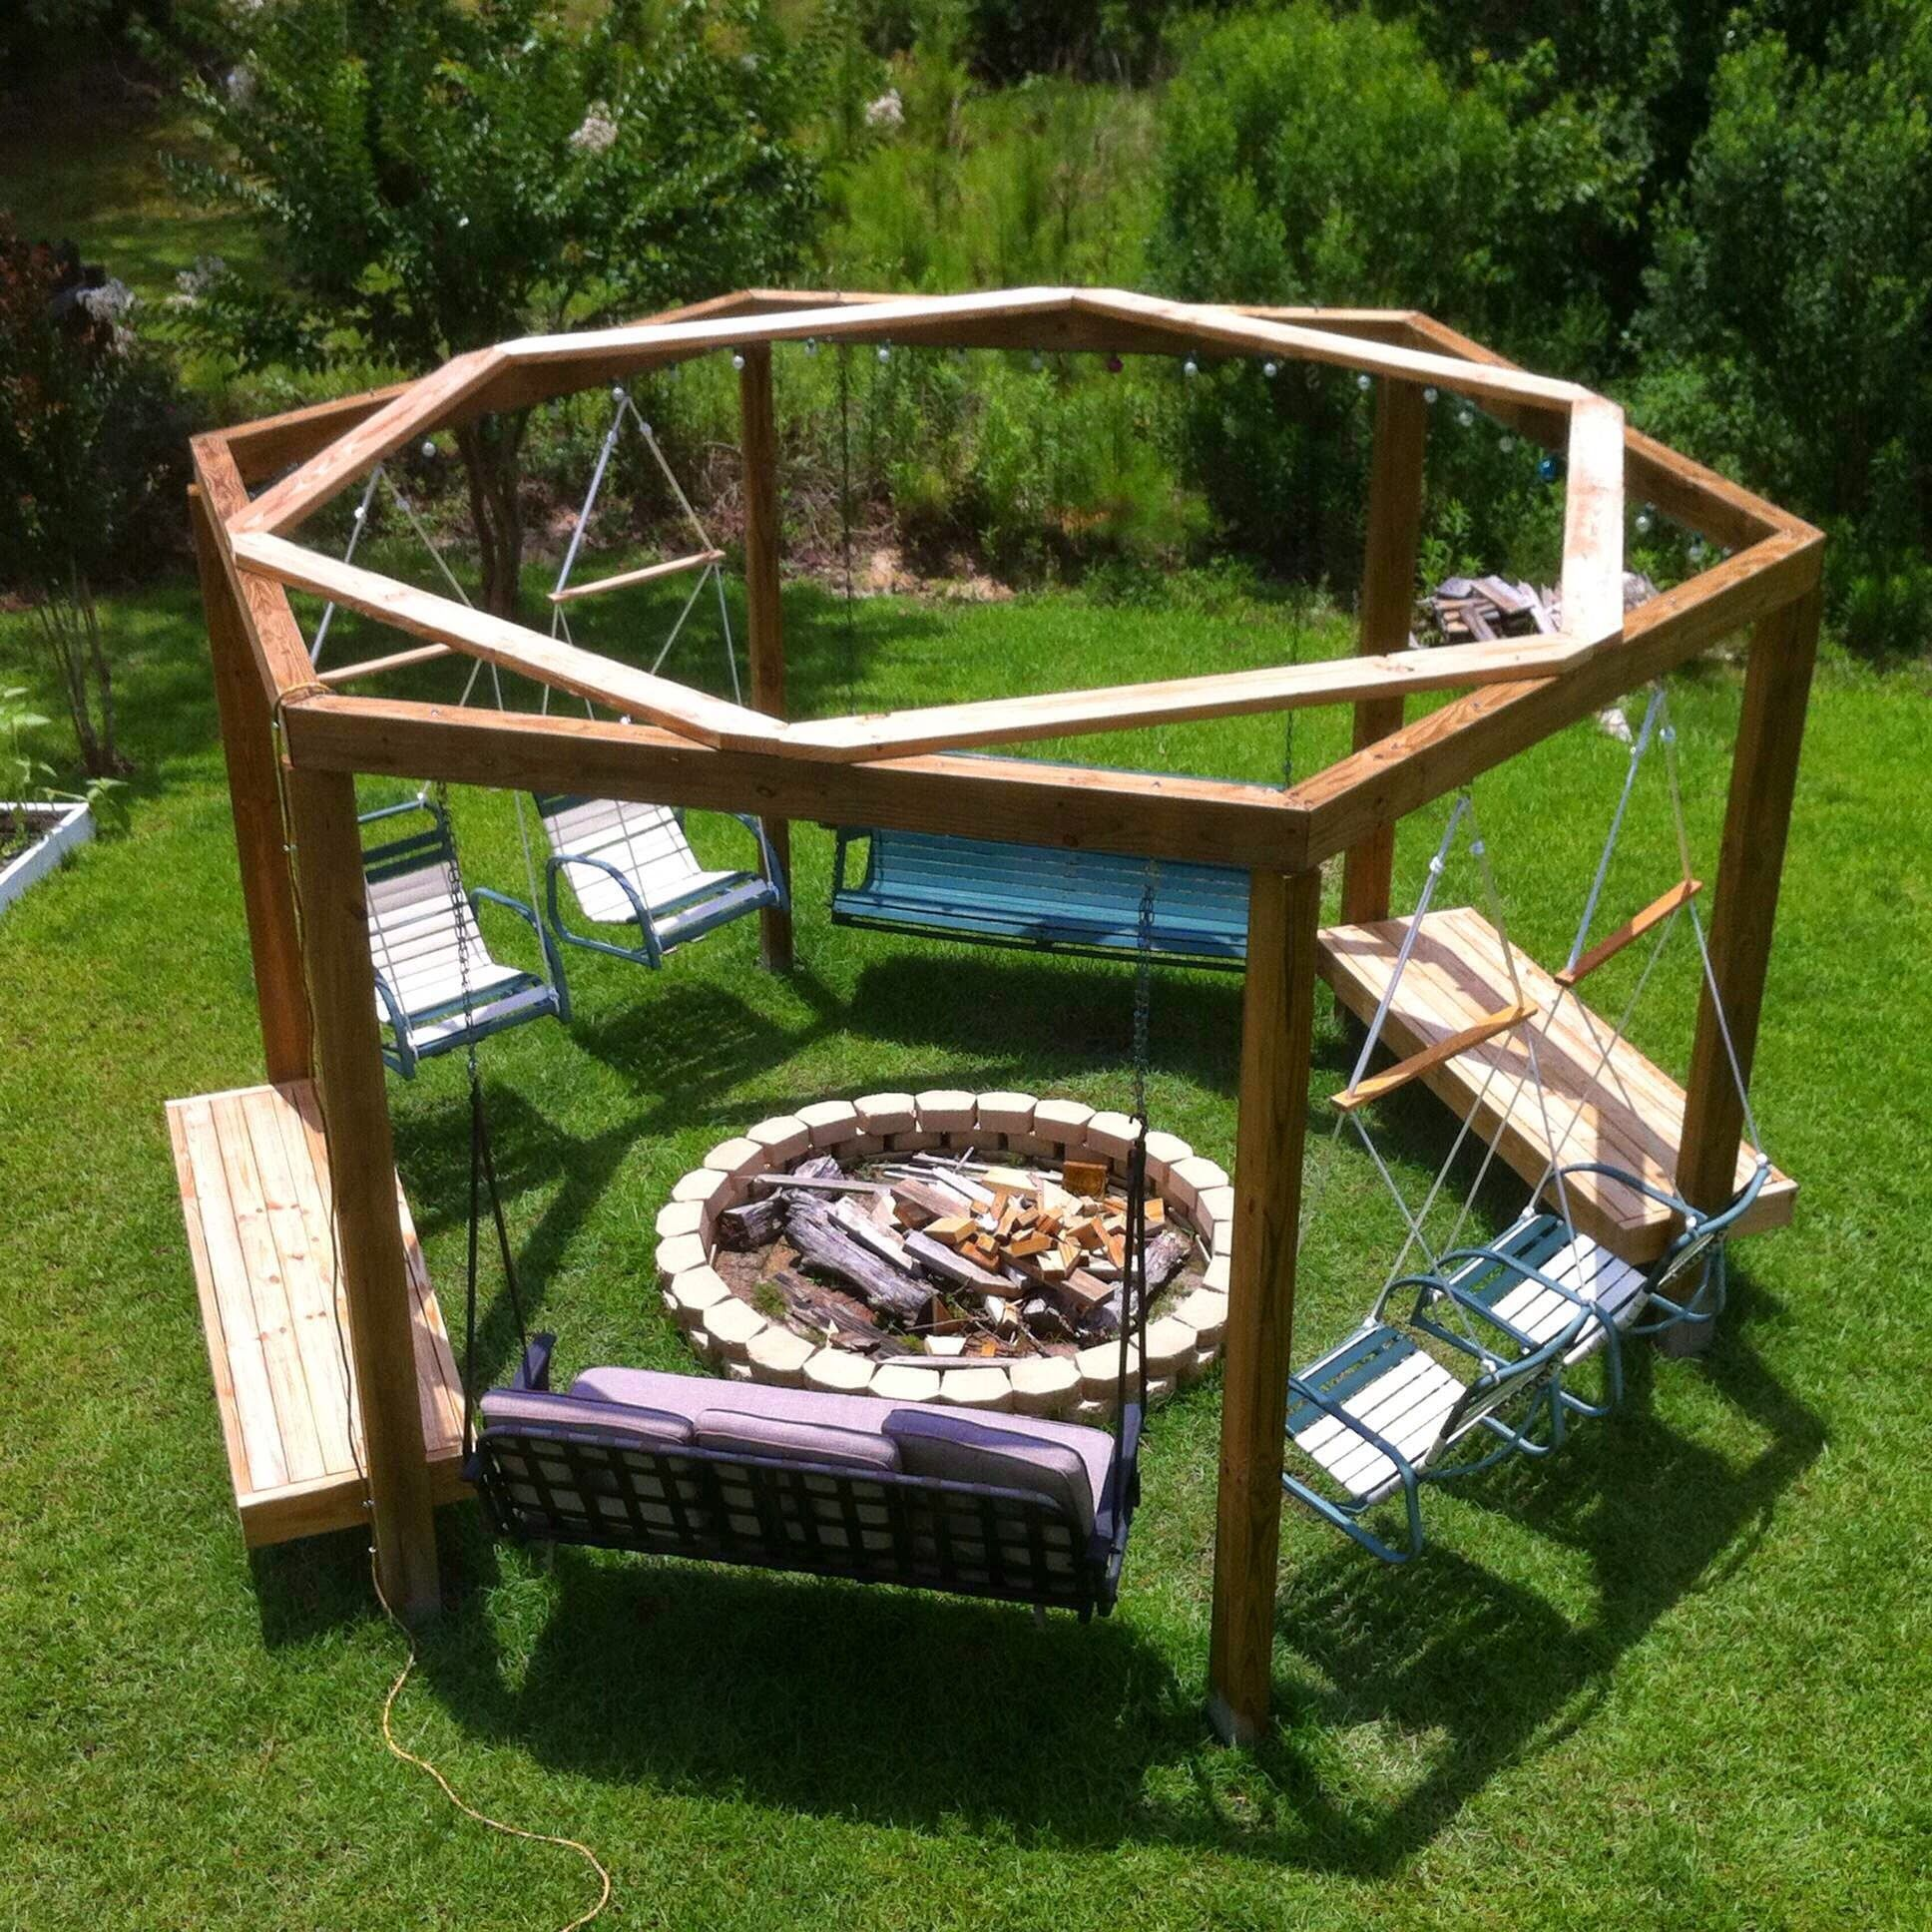 Incredible Hexagonal Fire Pit Swingset With Repurposed Lawn Chairs Machost Co Dining Chair Design Ideas Machostcouk